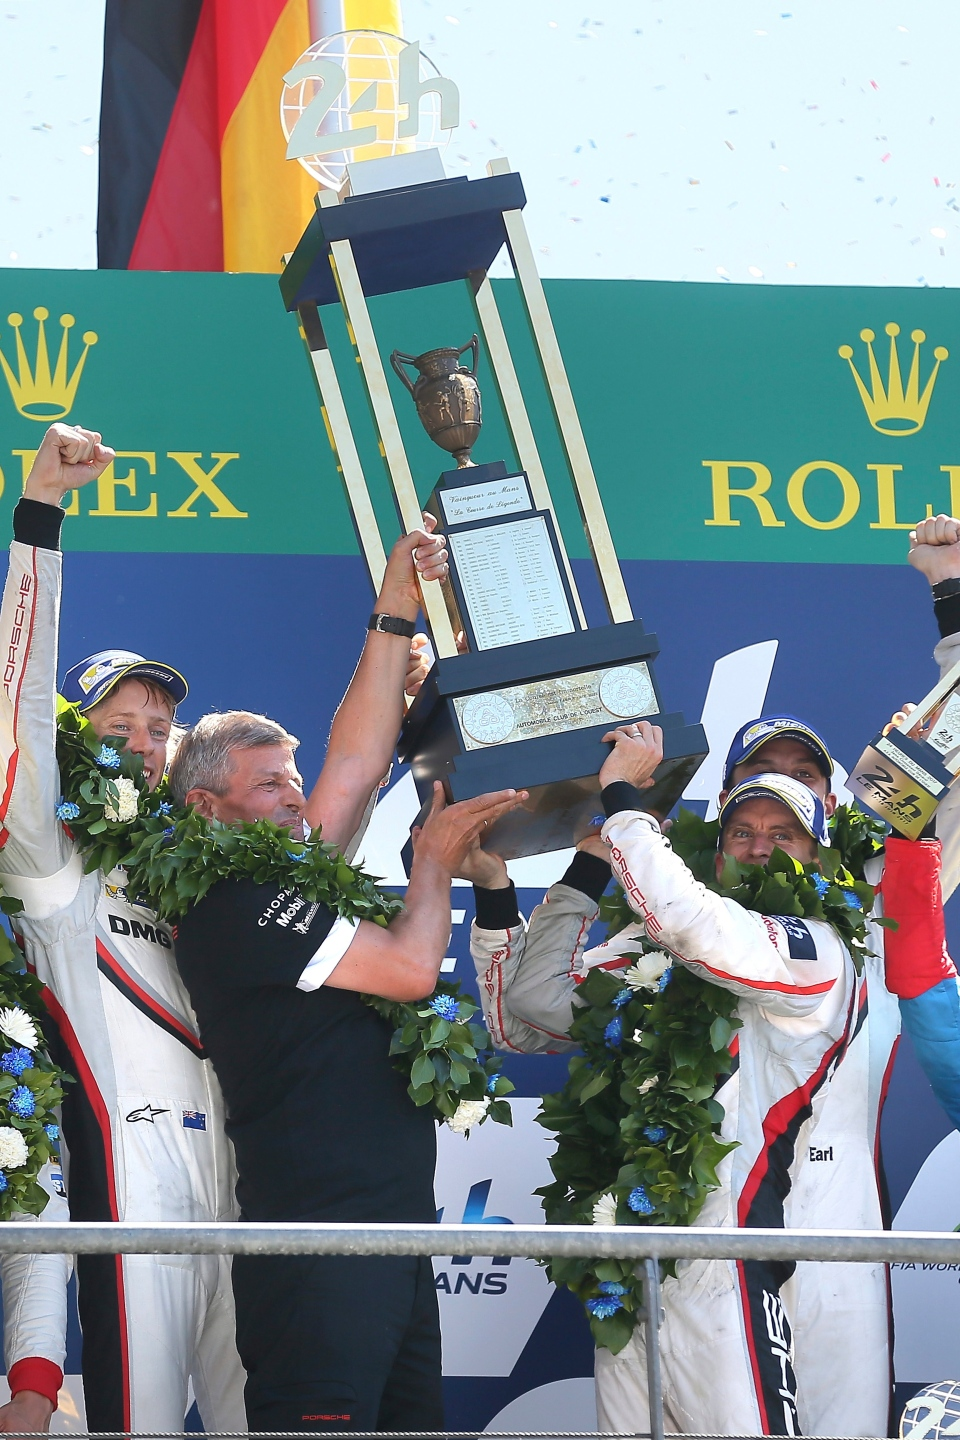 Driver Brendon Hartley of New Zealand, Fritz Enzinger, president of Porsche Team, Earl Bamber of New Zealand and German driver Timo Bernhard hold the Trophy during the podium ceremony of the 85th 24-hour Le Mans endurance race, in Le Mans, western France, Sunday, June 18, 2017. (David Vincent/AP Photo)